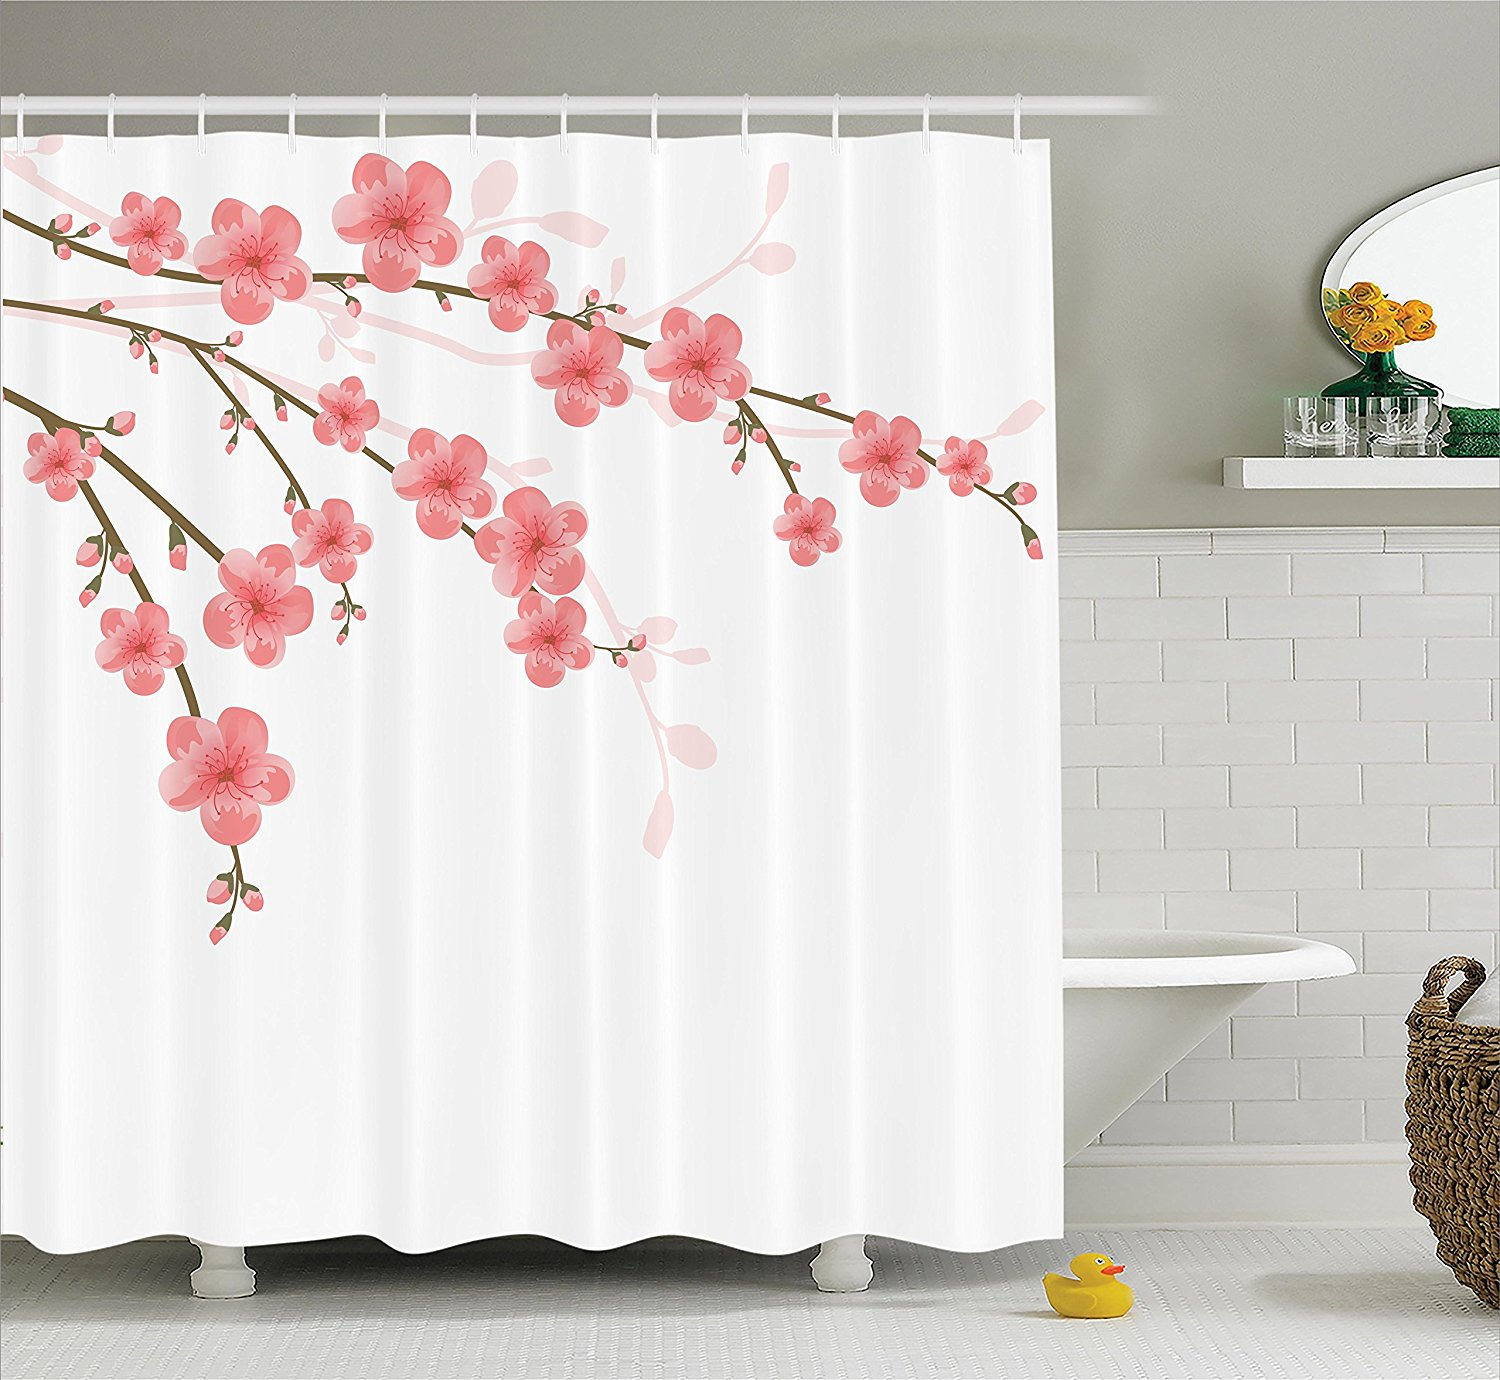 WARM TOUR Cherry Blossom Fashion Shower Curtain Polyester Curtain  Hotel/Bathroom With Hooks Ring72u0027